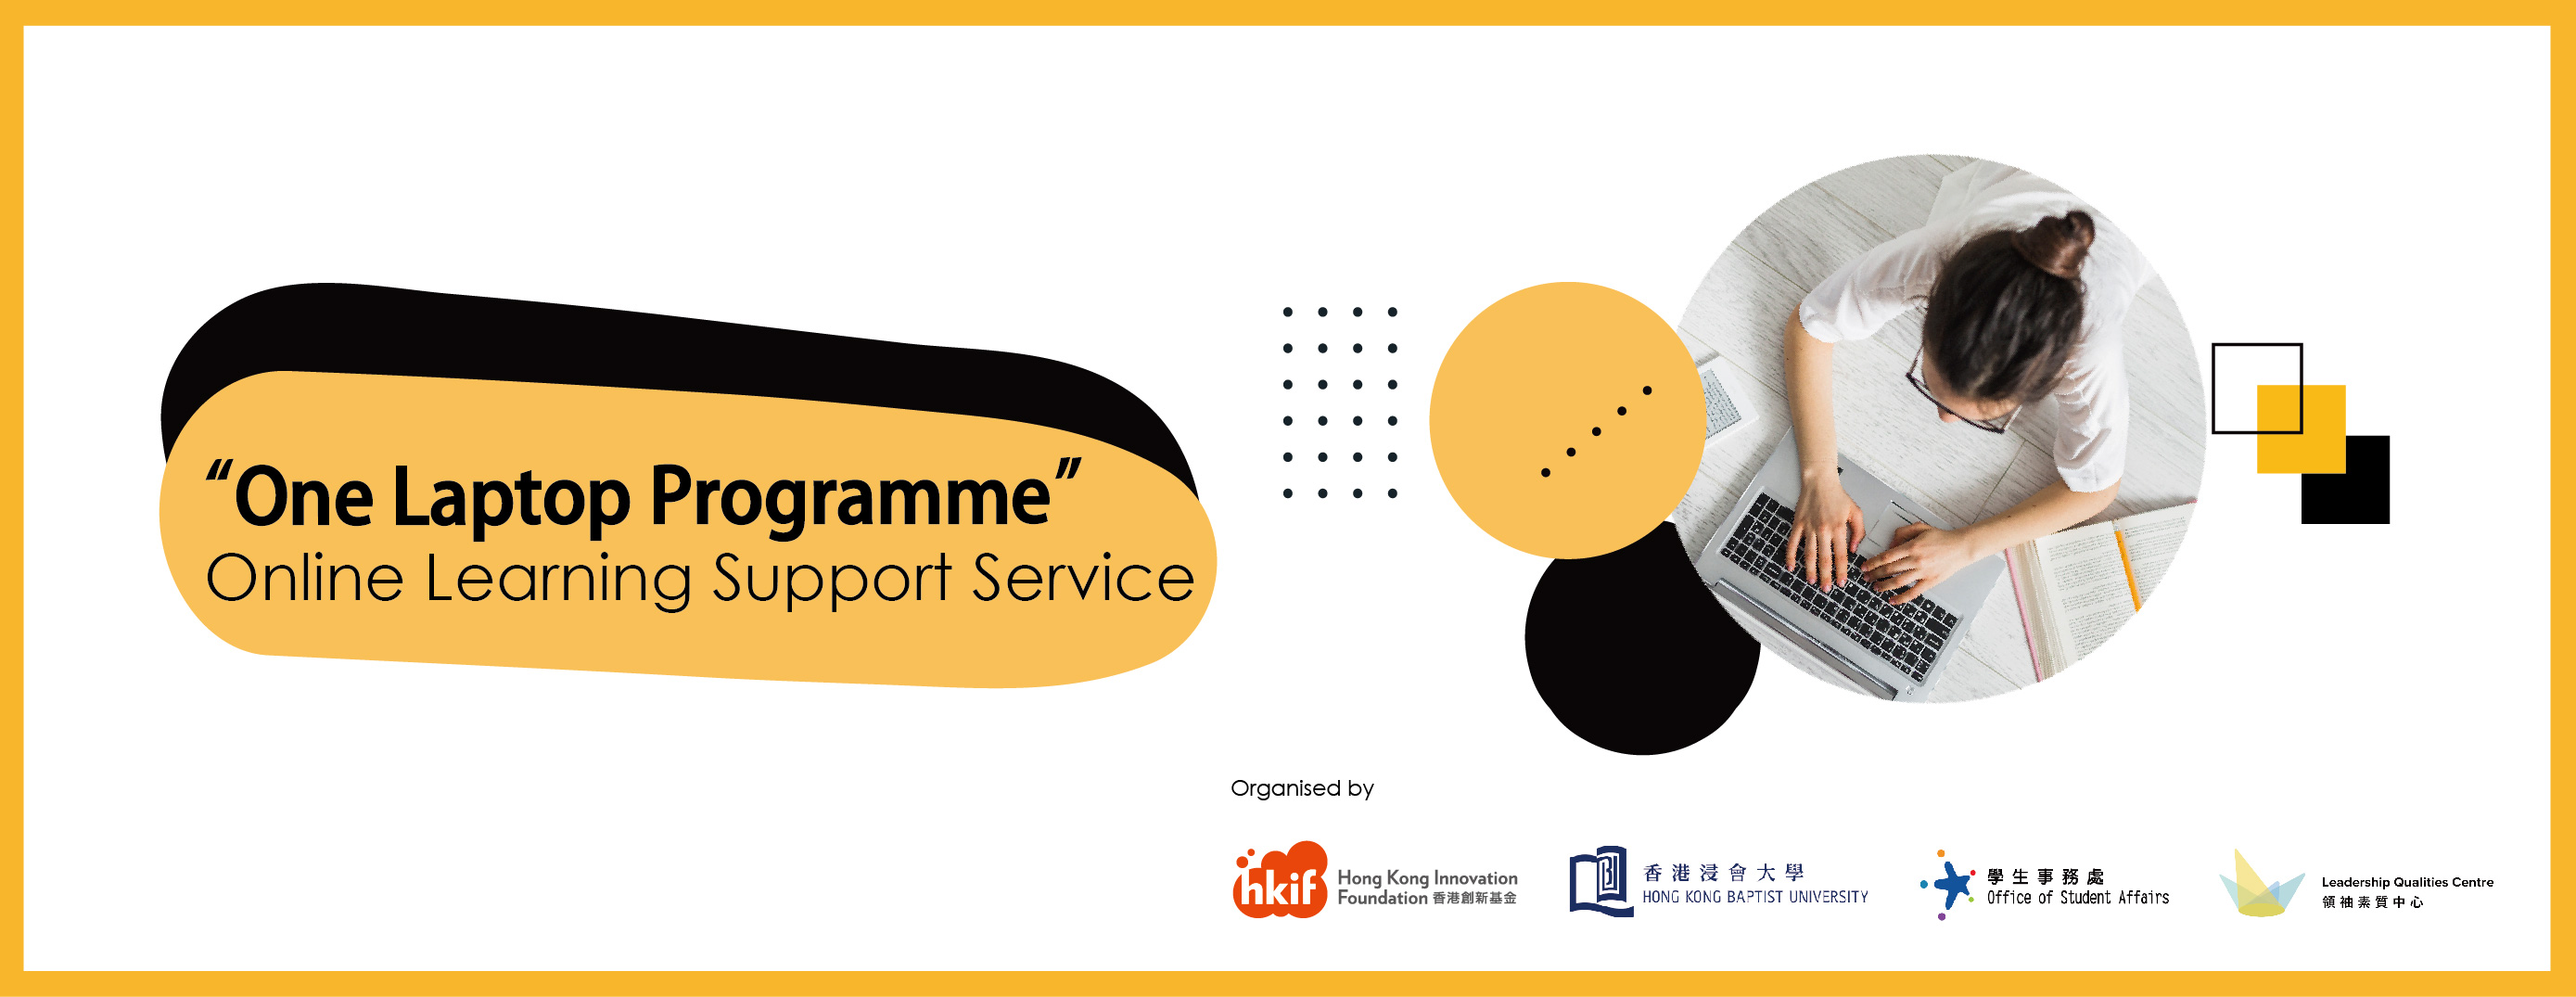 one laptop programme online learning support service